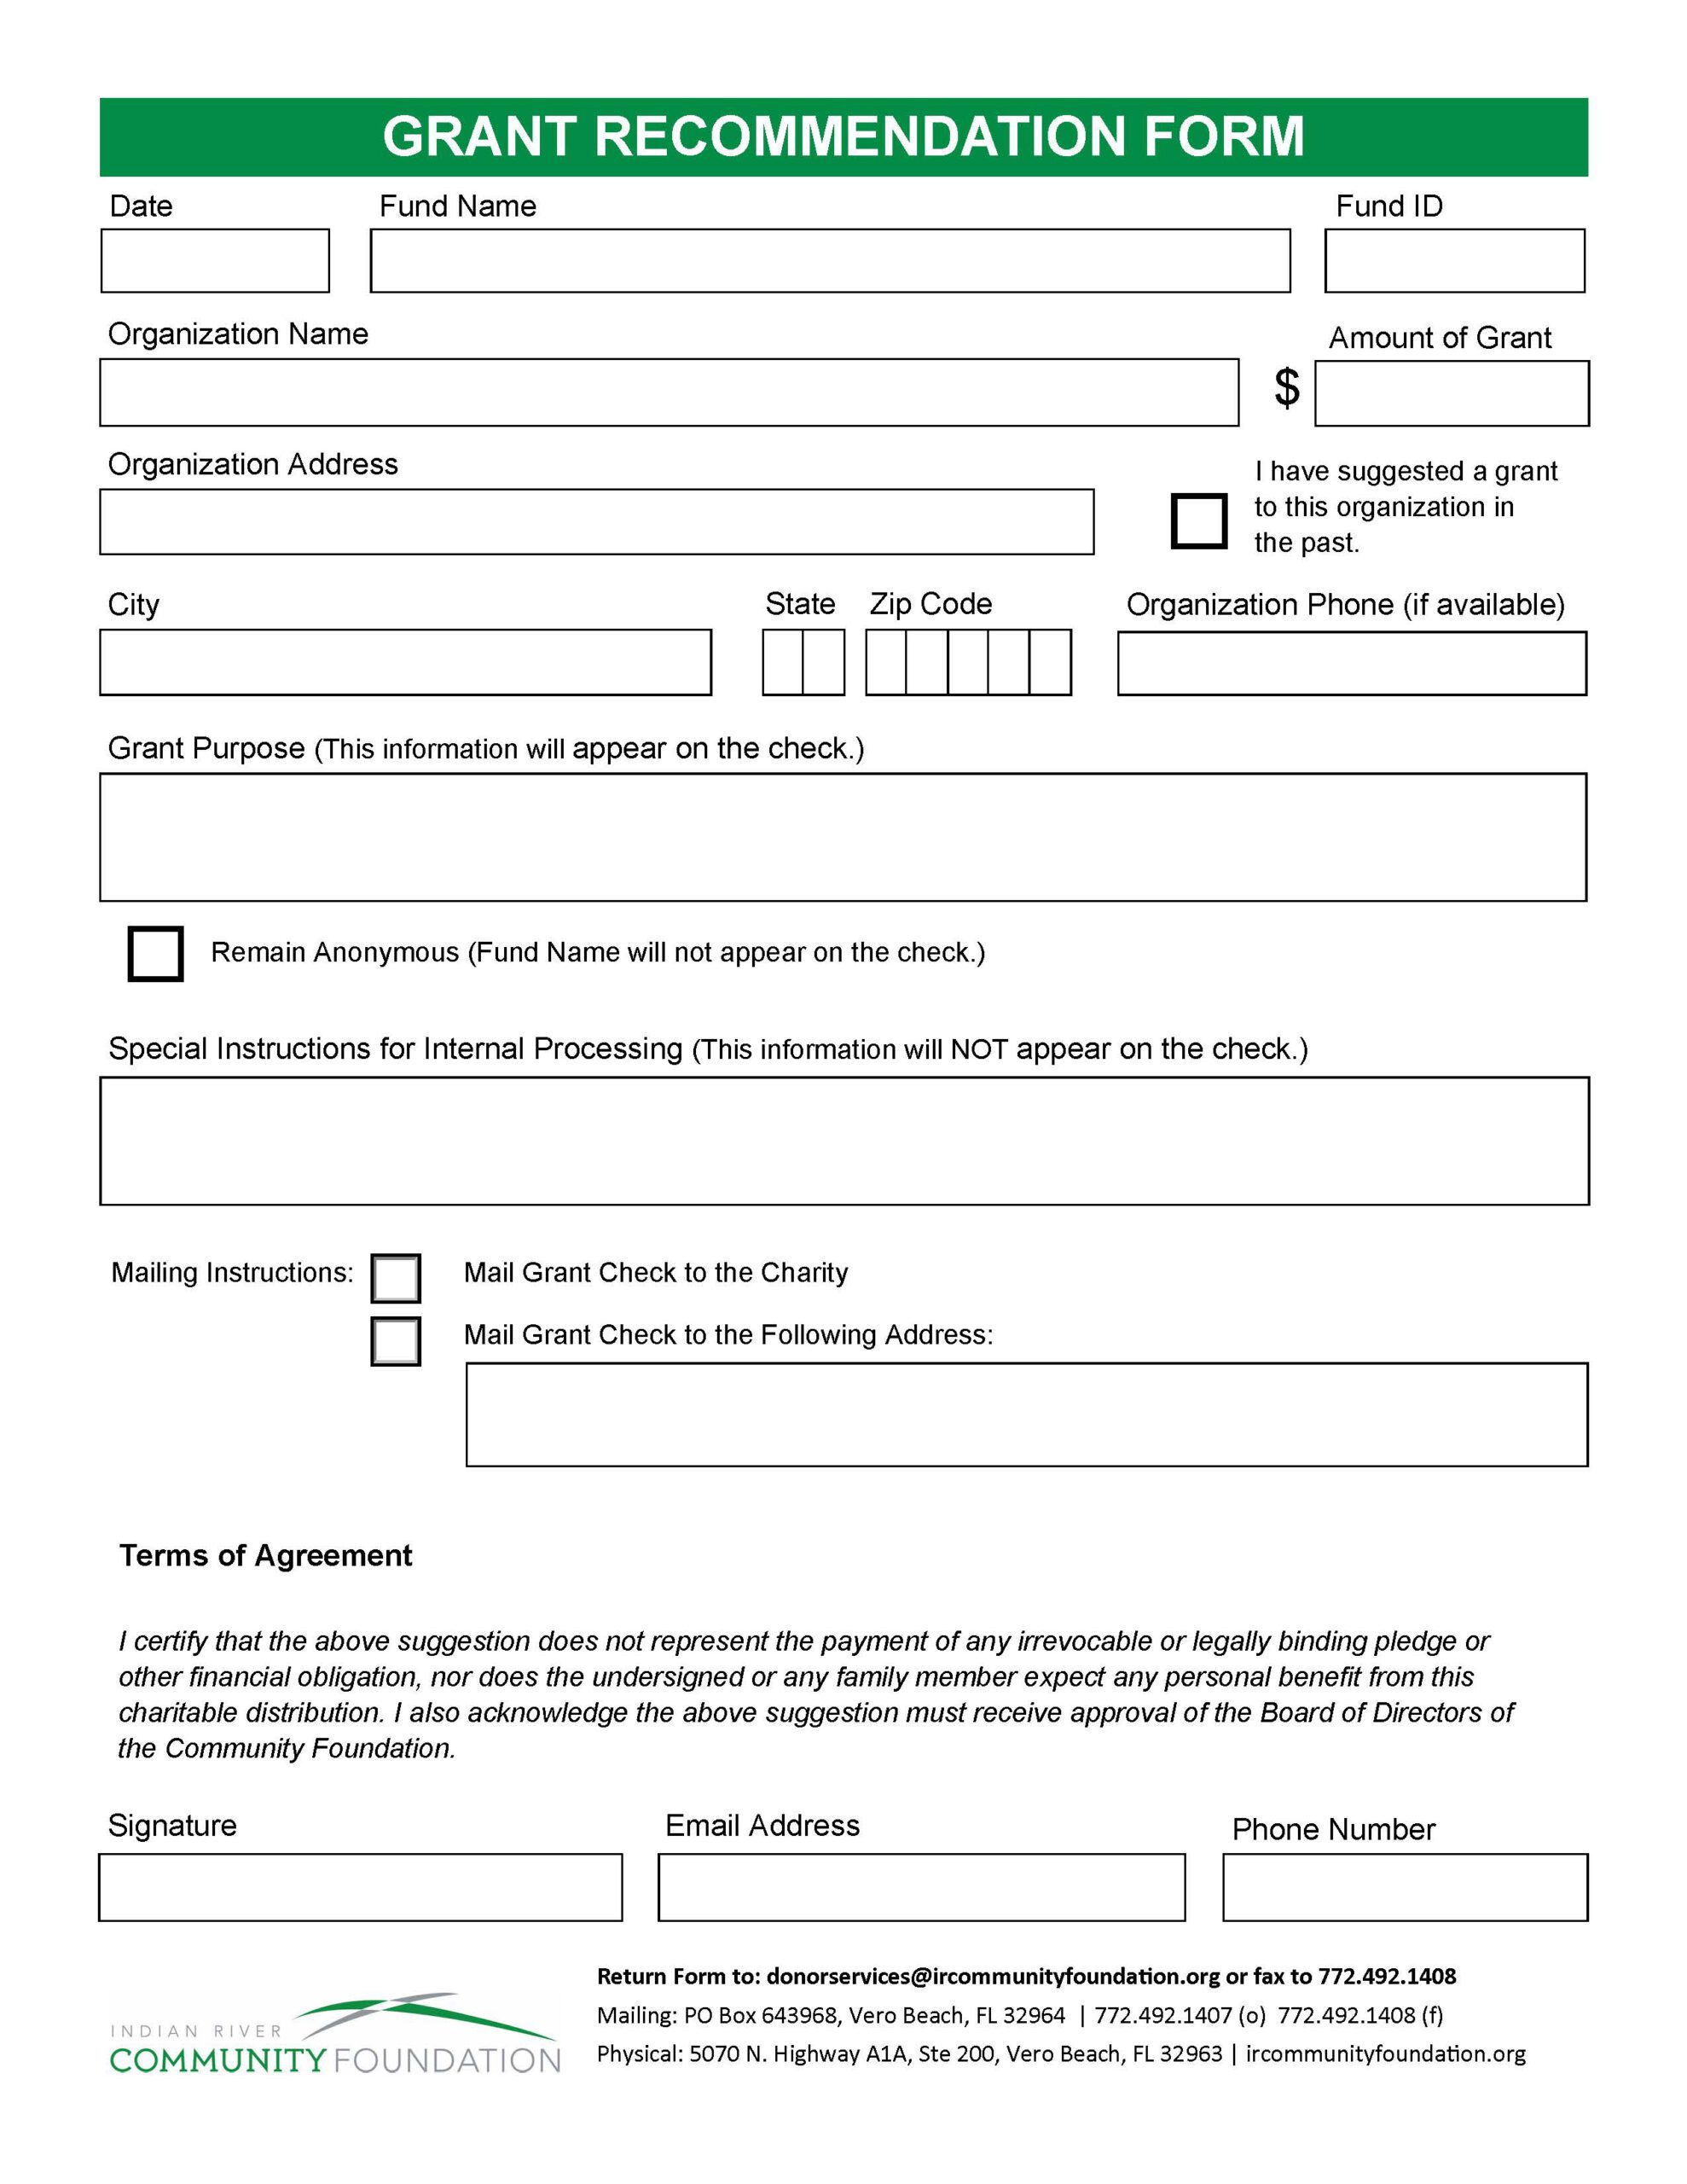 Grant Recommendation Form